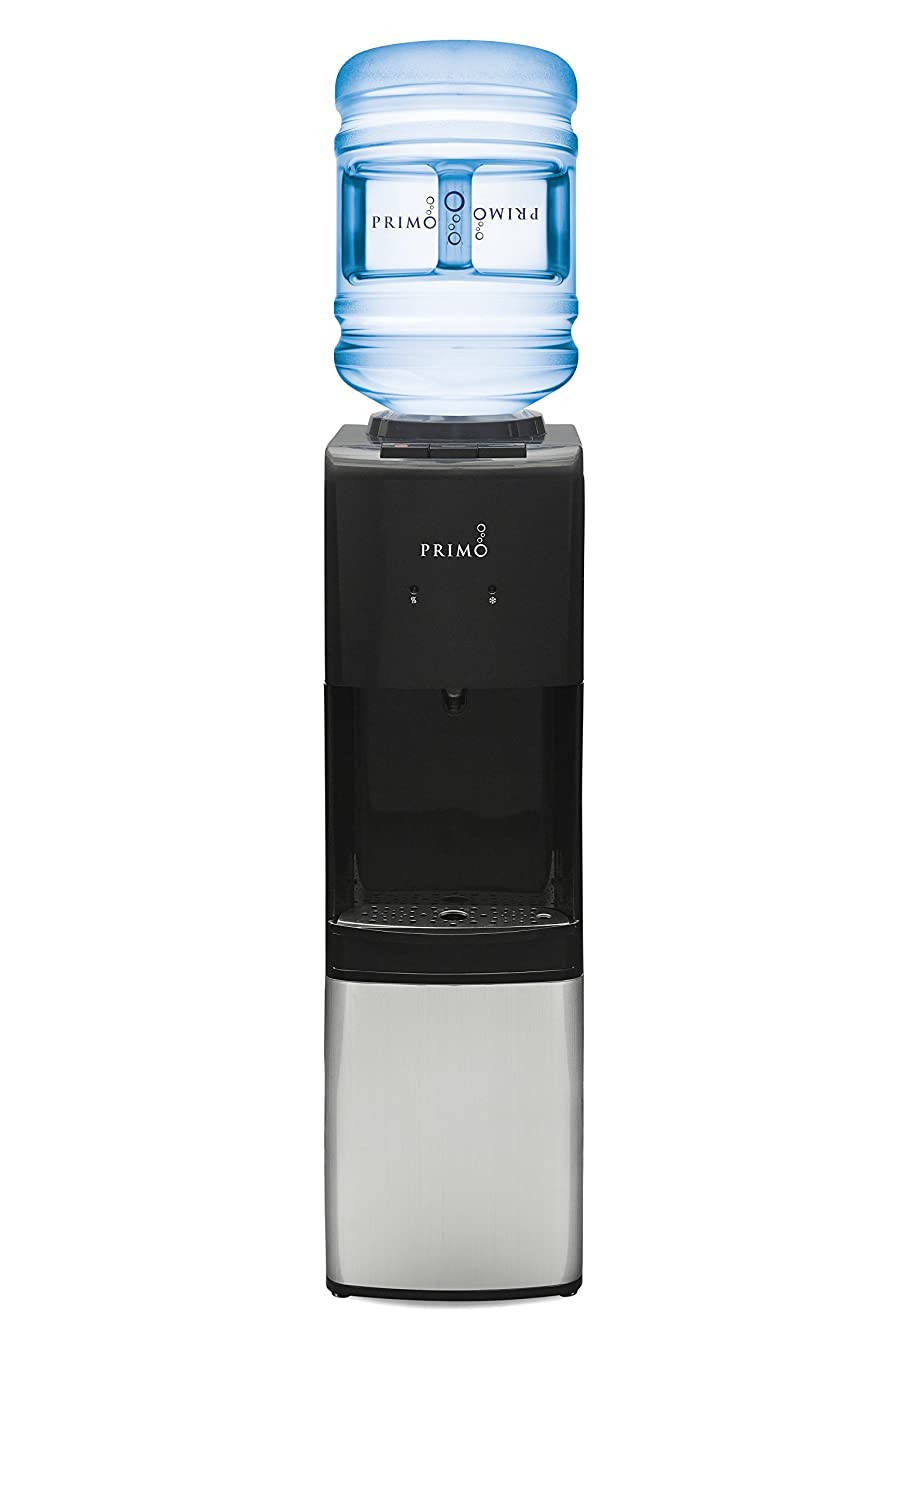 Primo Top Loading Water Cooler - 3 Temperature Settings, Hot, Cold & Cool - Energy Star Rated Water Dispenser with Child-Resistant Safety Feature Supports 3 or 5 Gallon Water Jugs [Black w/Stainless]